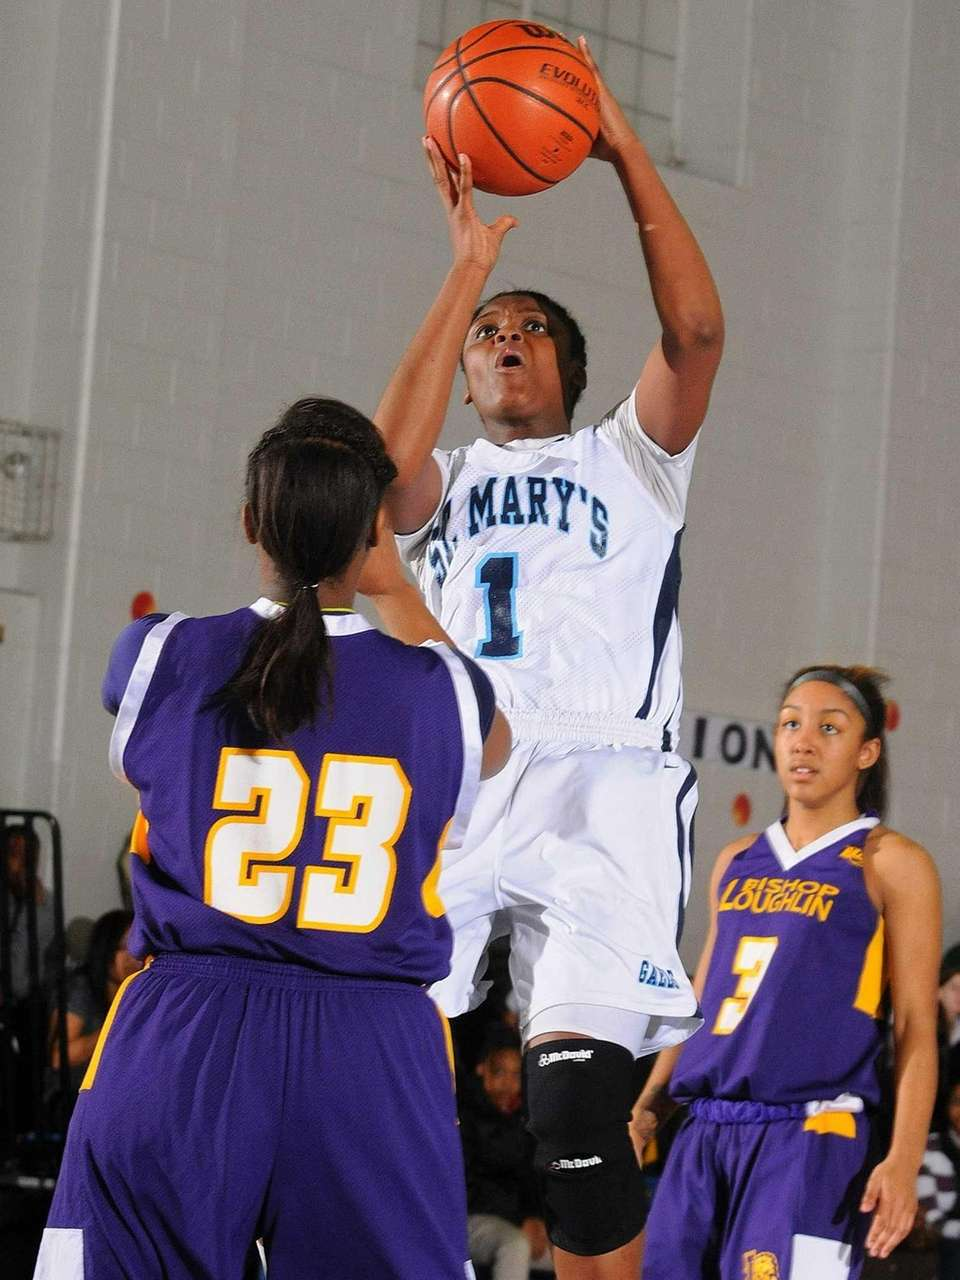 St. Mary's Jordan Agustus looks to drive to